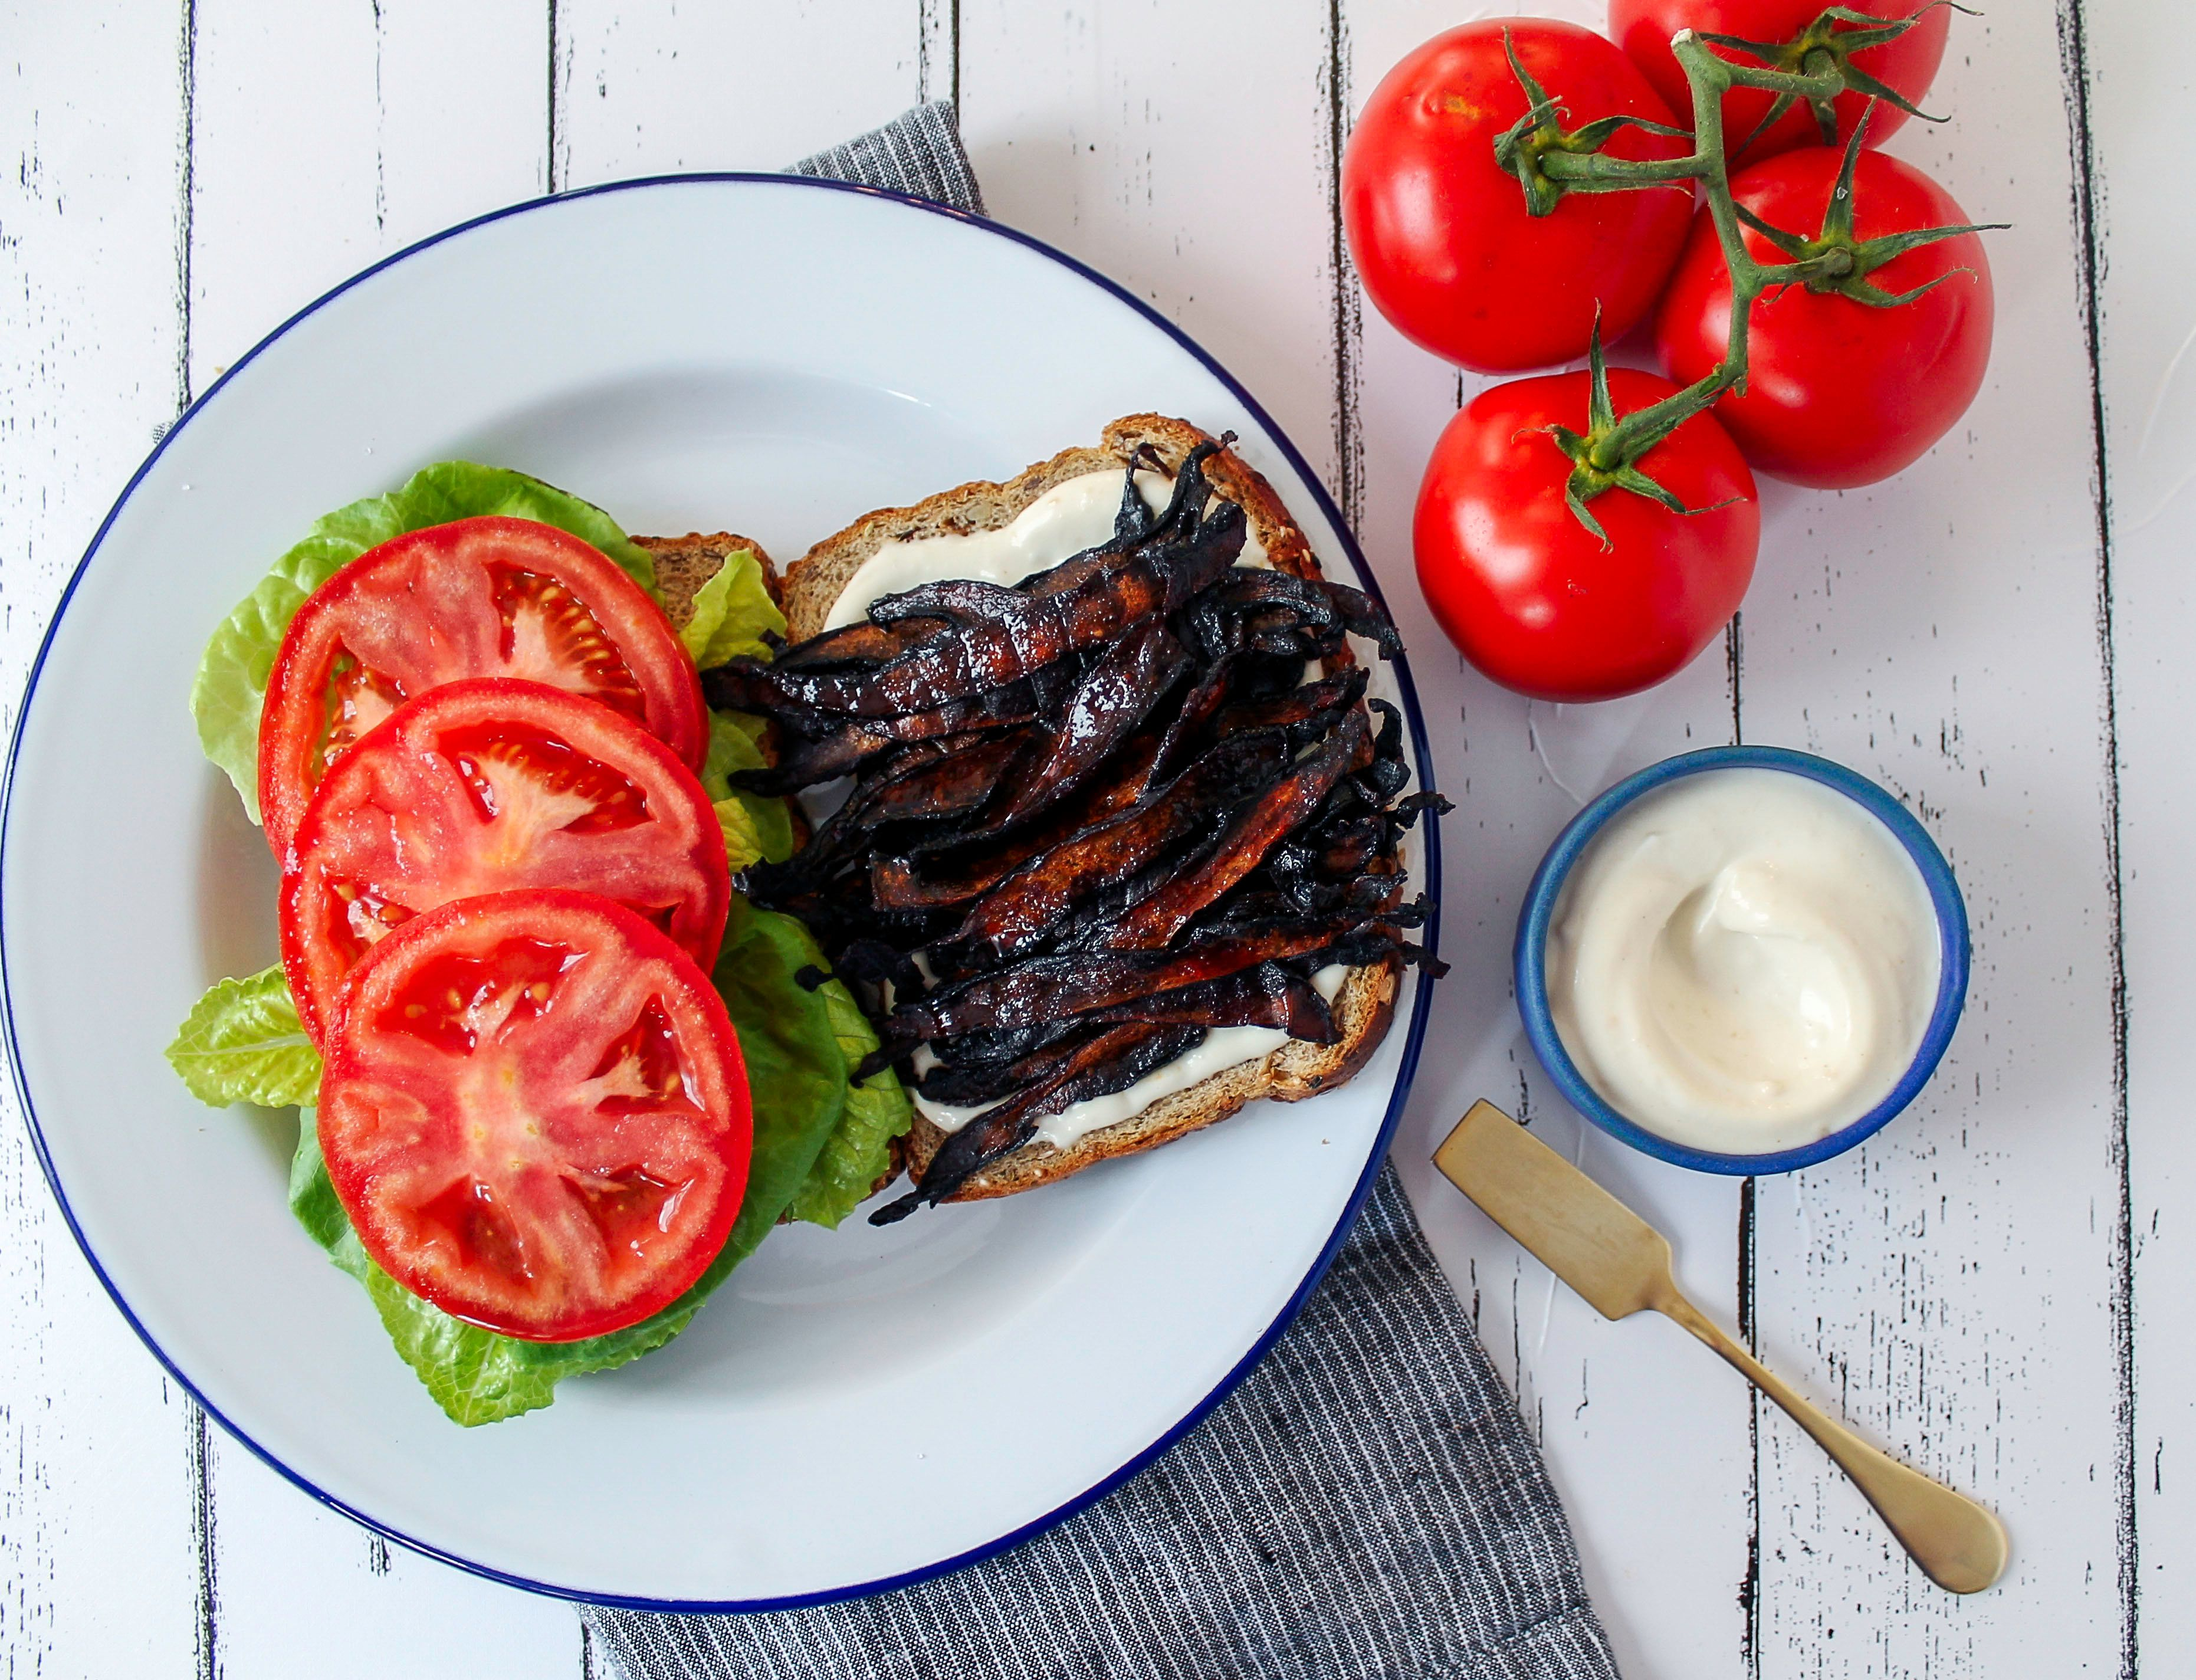 This vegan BLT uses specially prepared mushrooms that stand in for the bacon.